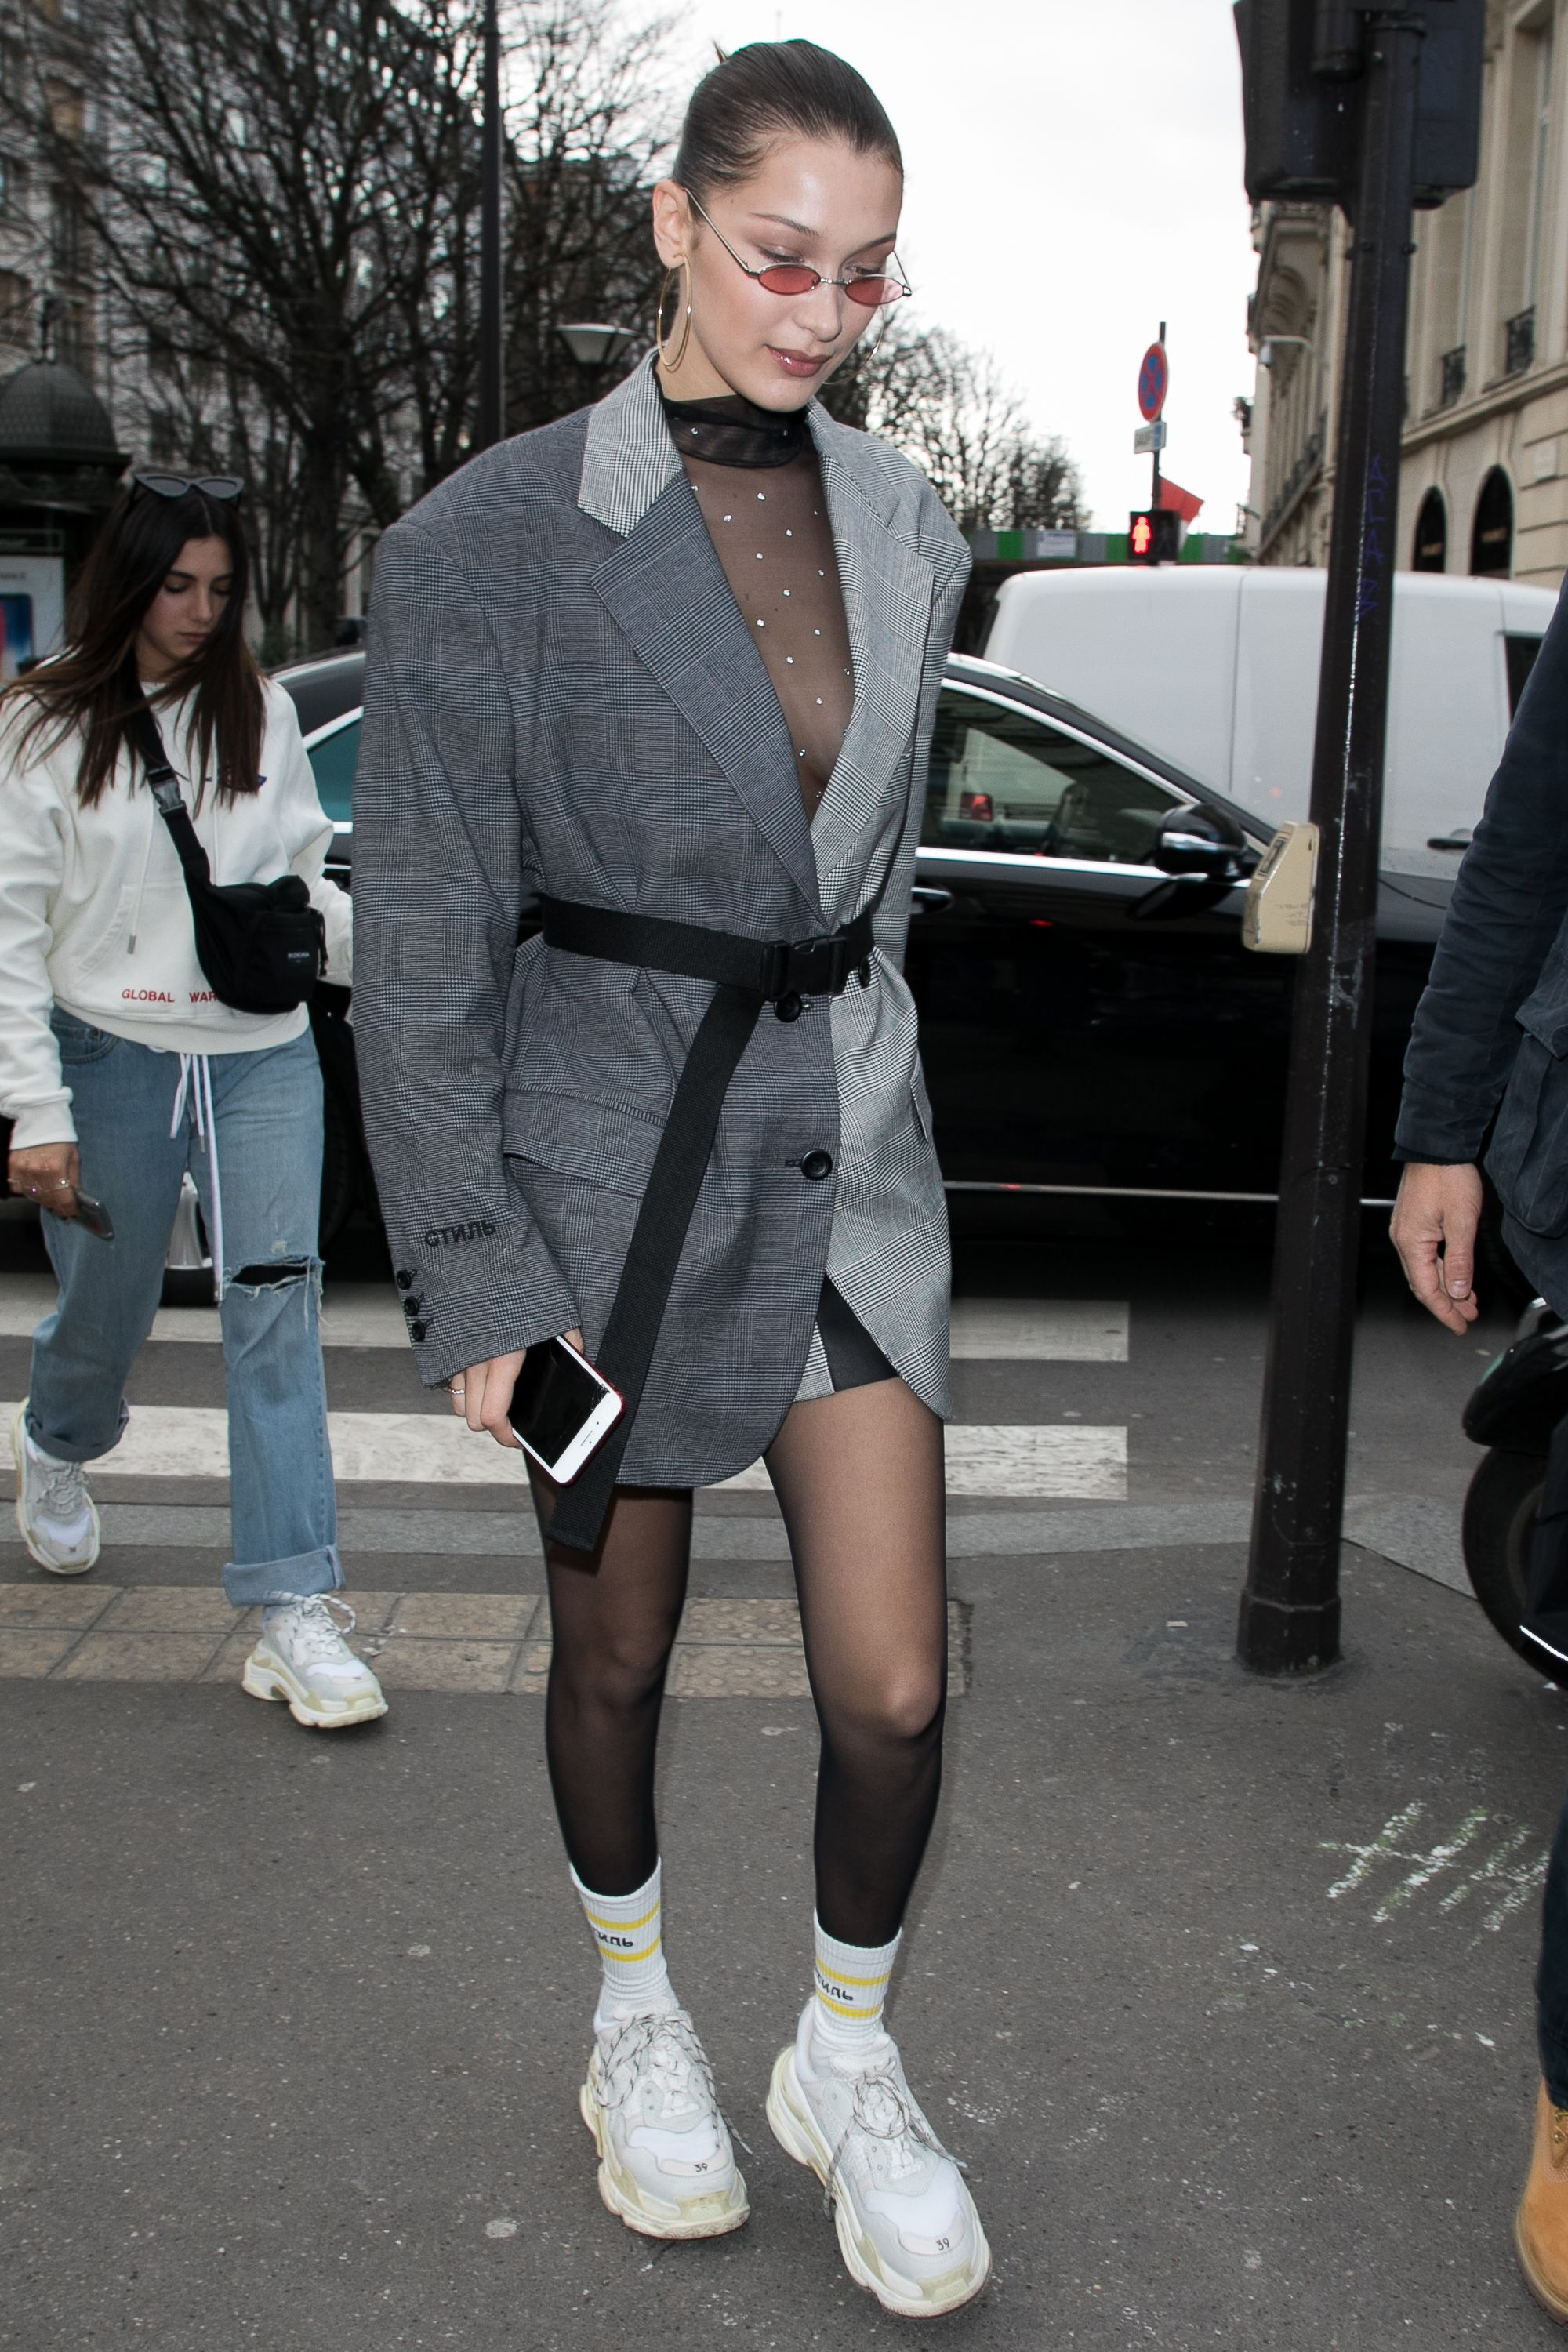 Dad Sneakers Trend - Kendall Jenner and